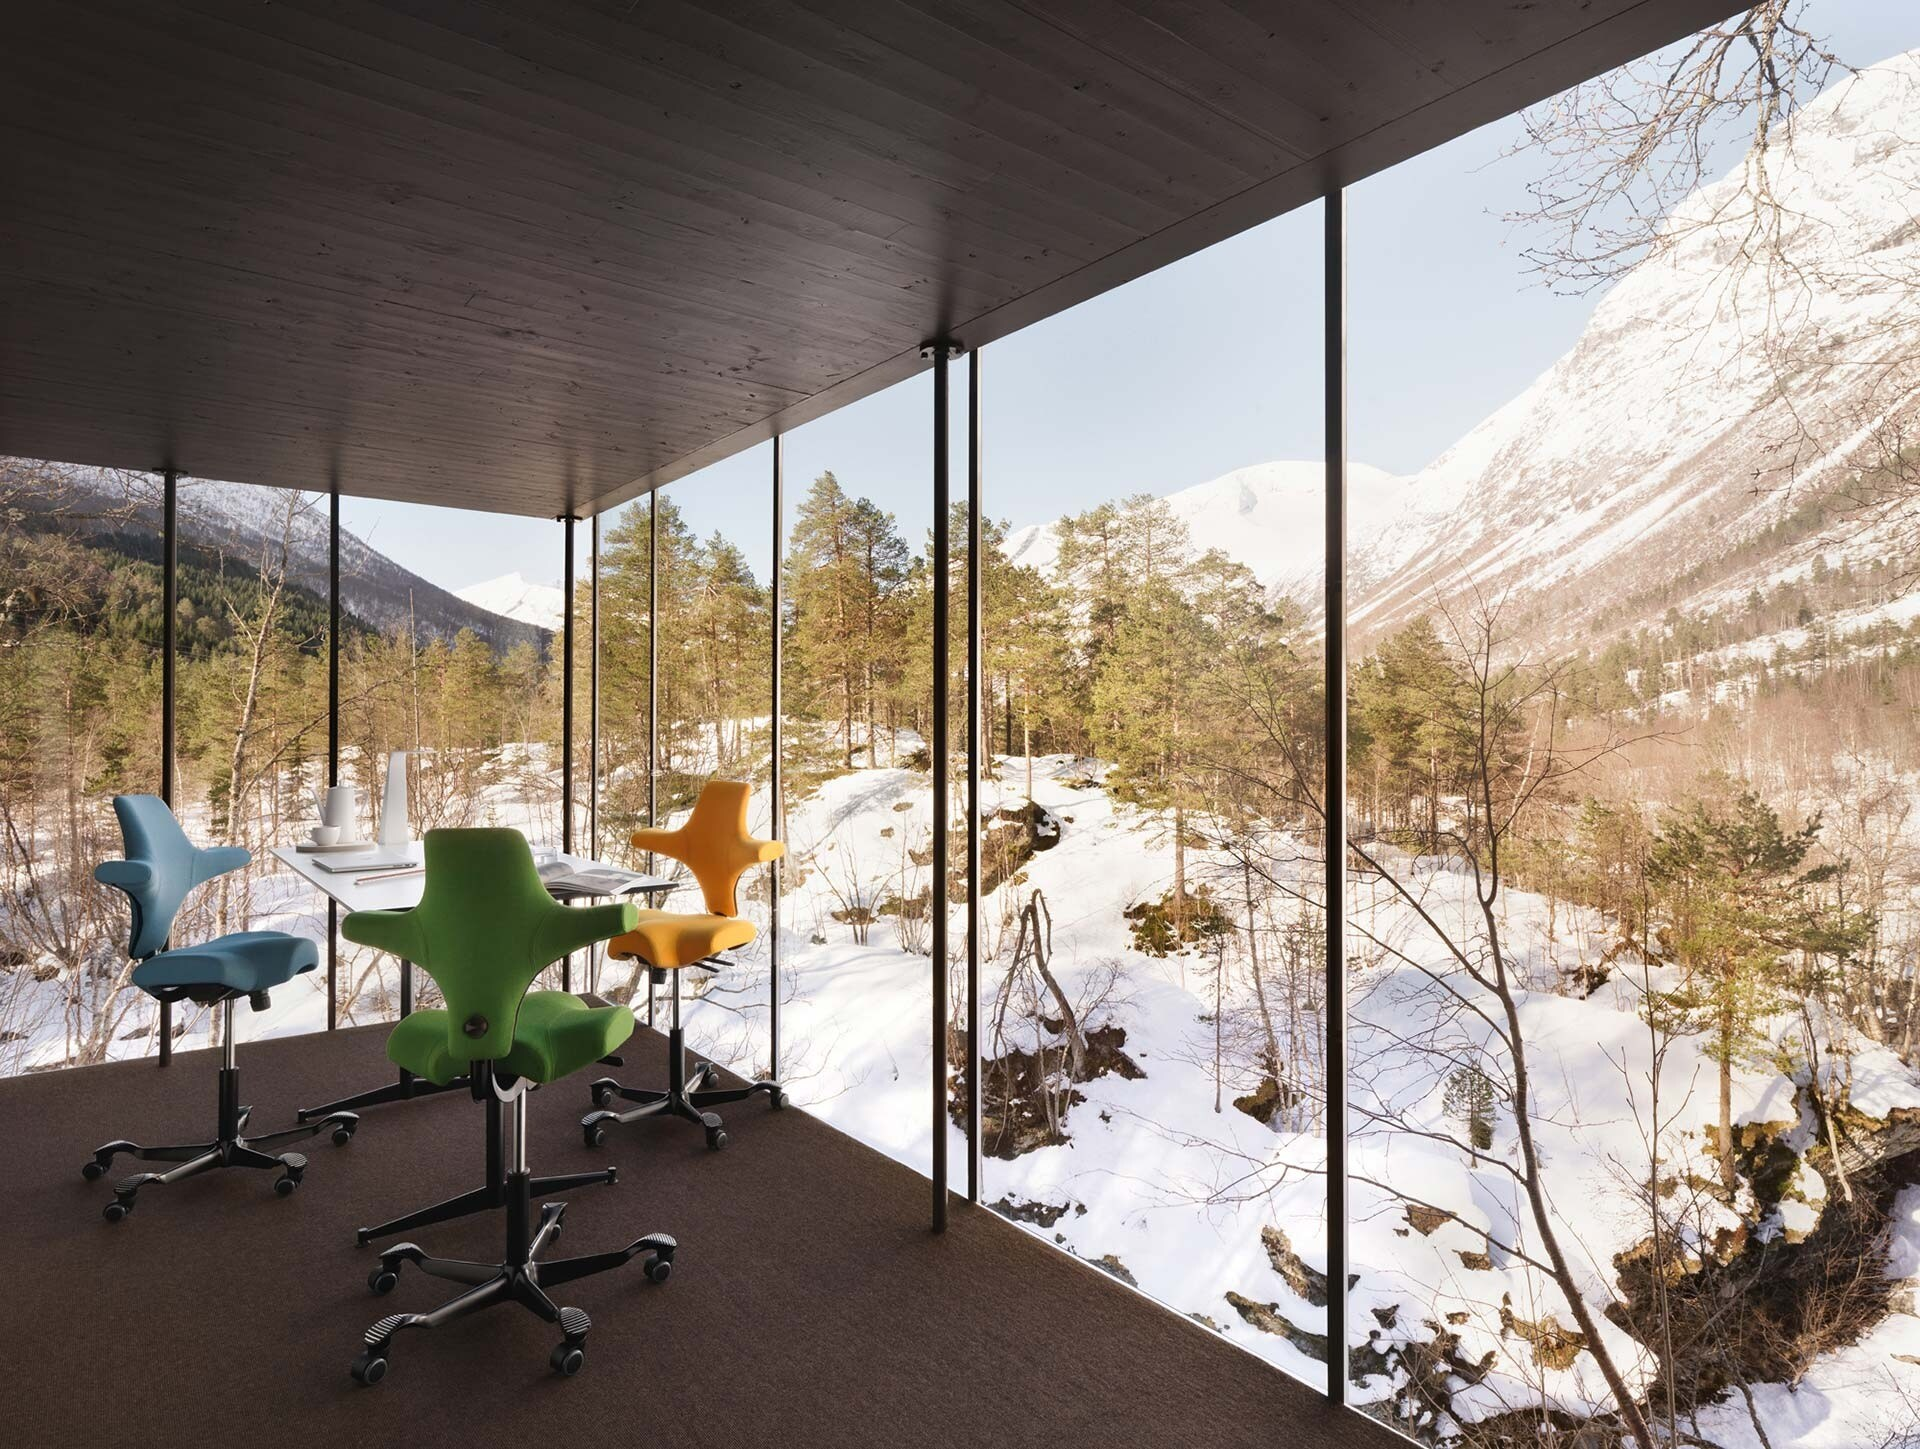 Simulation of Flokk chairs in a glass walled room looking out to mountains